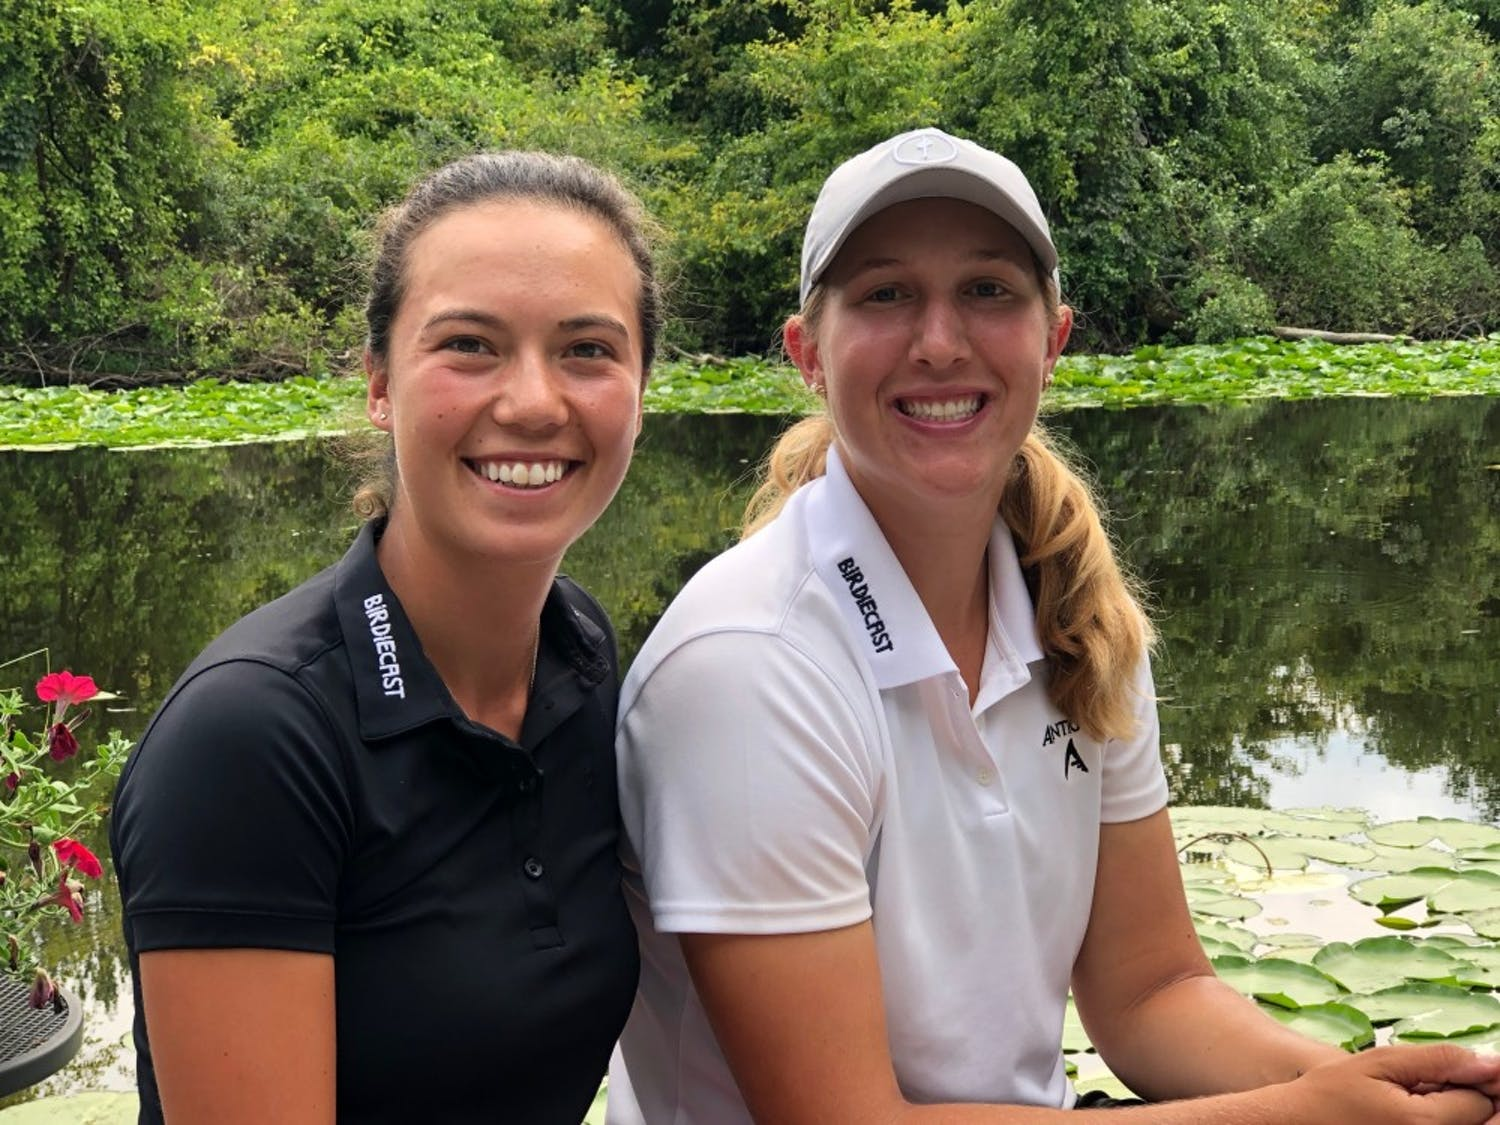 Former UNC golfers Leslie Cloots and Maia Schechter. Photo courtesy of Maia Schechter.